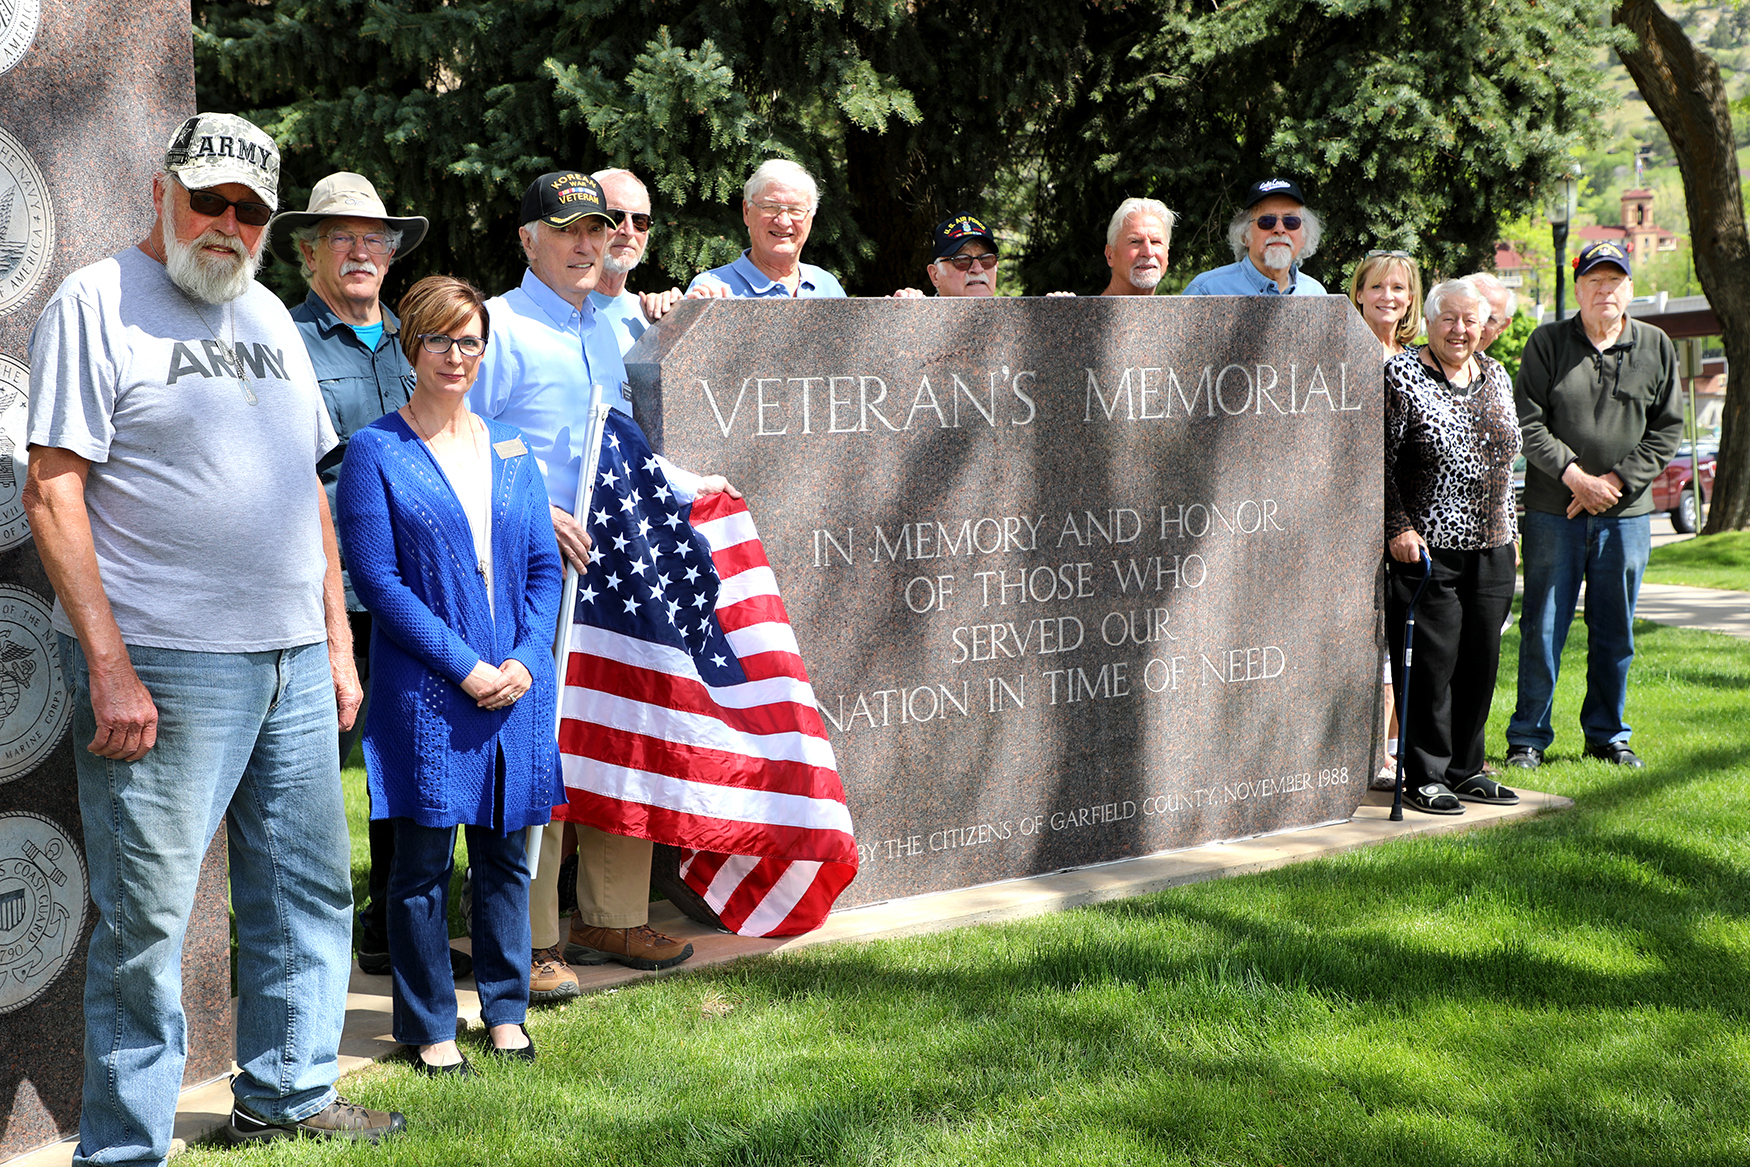 Veterans pose next to the Veteran's Memorial in Glenwood Springs, Colo., on Armed Forces Day 2019.